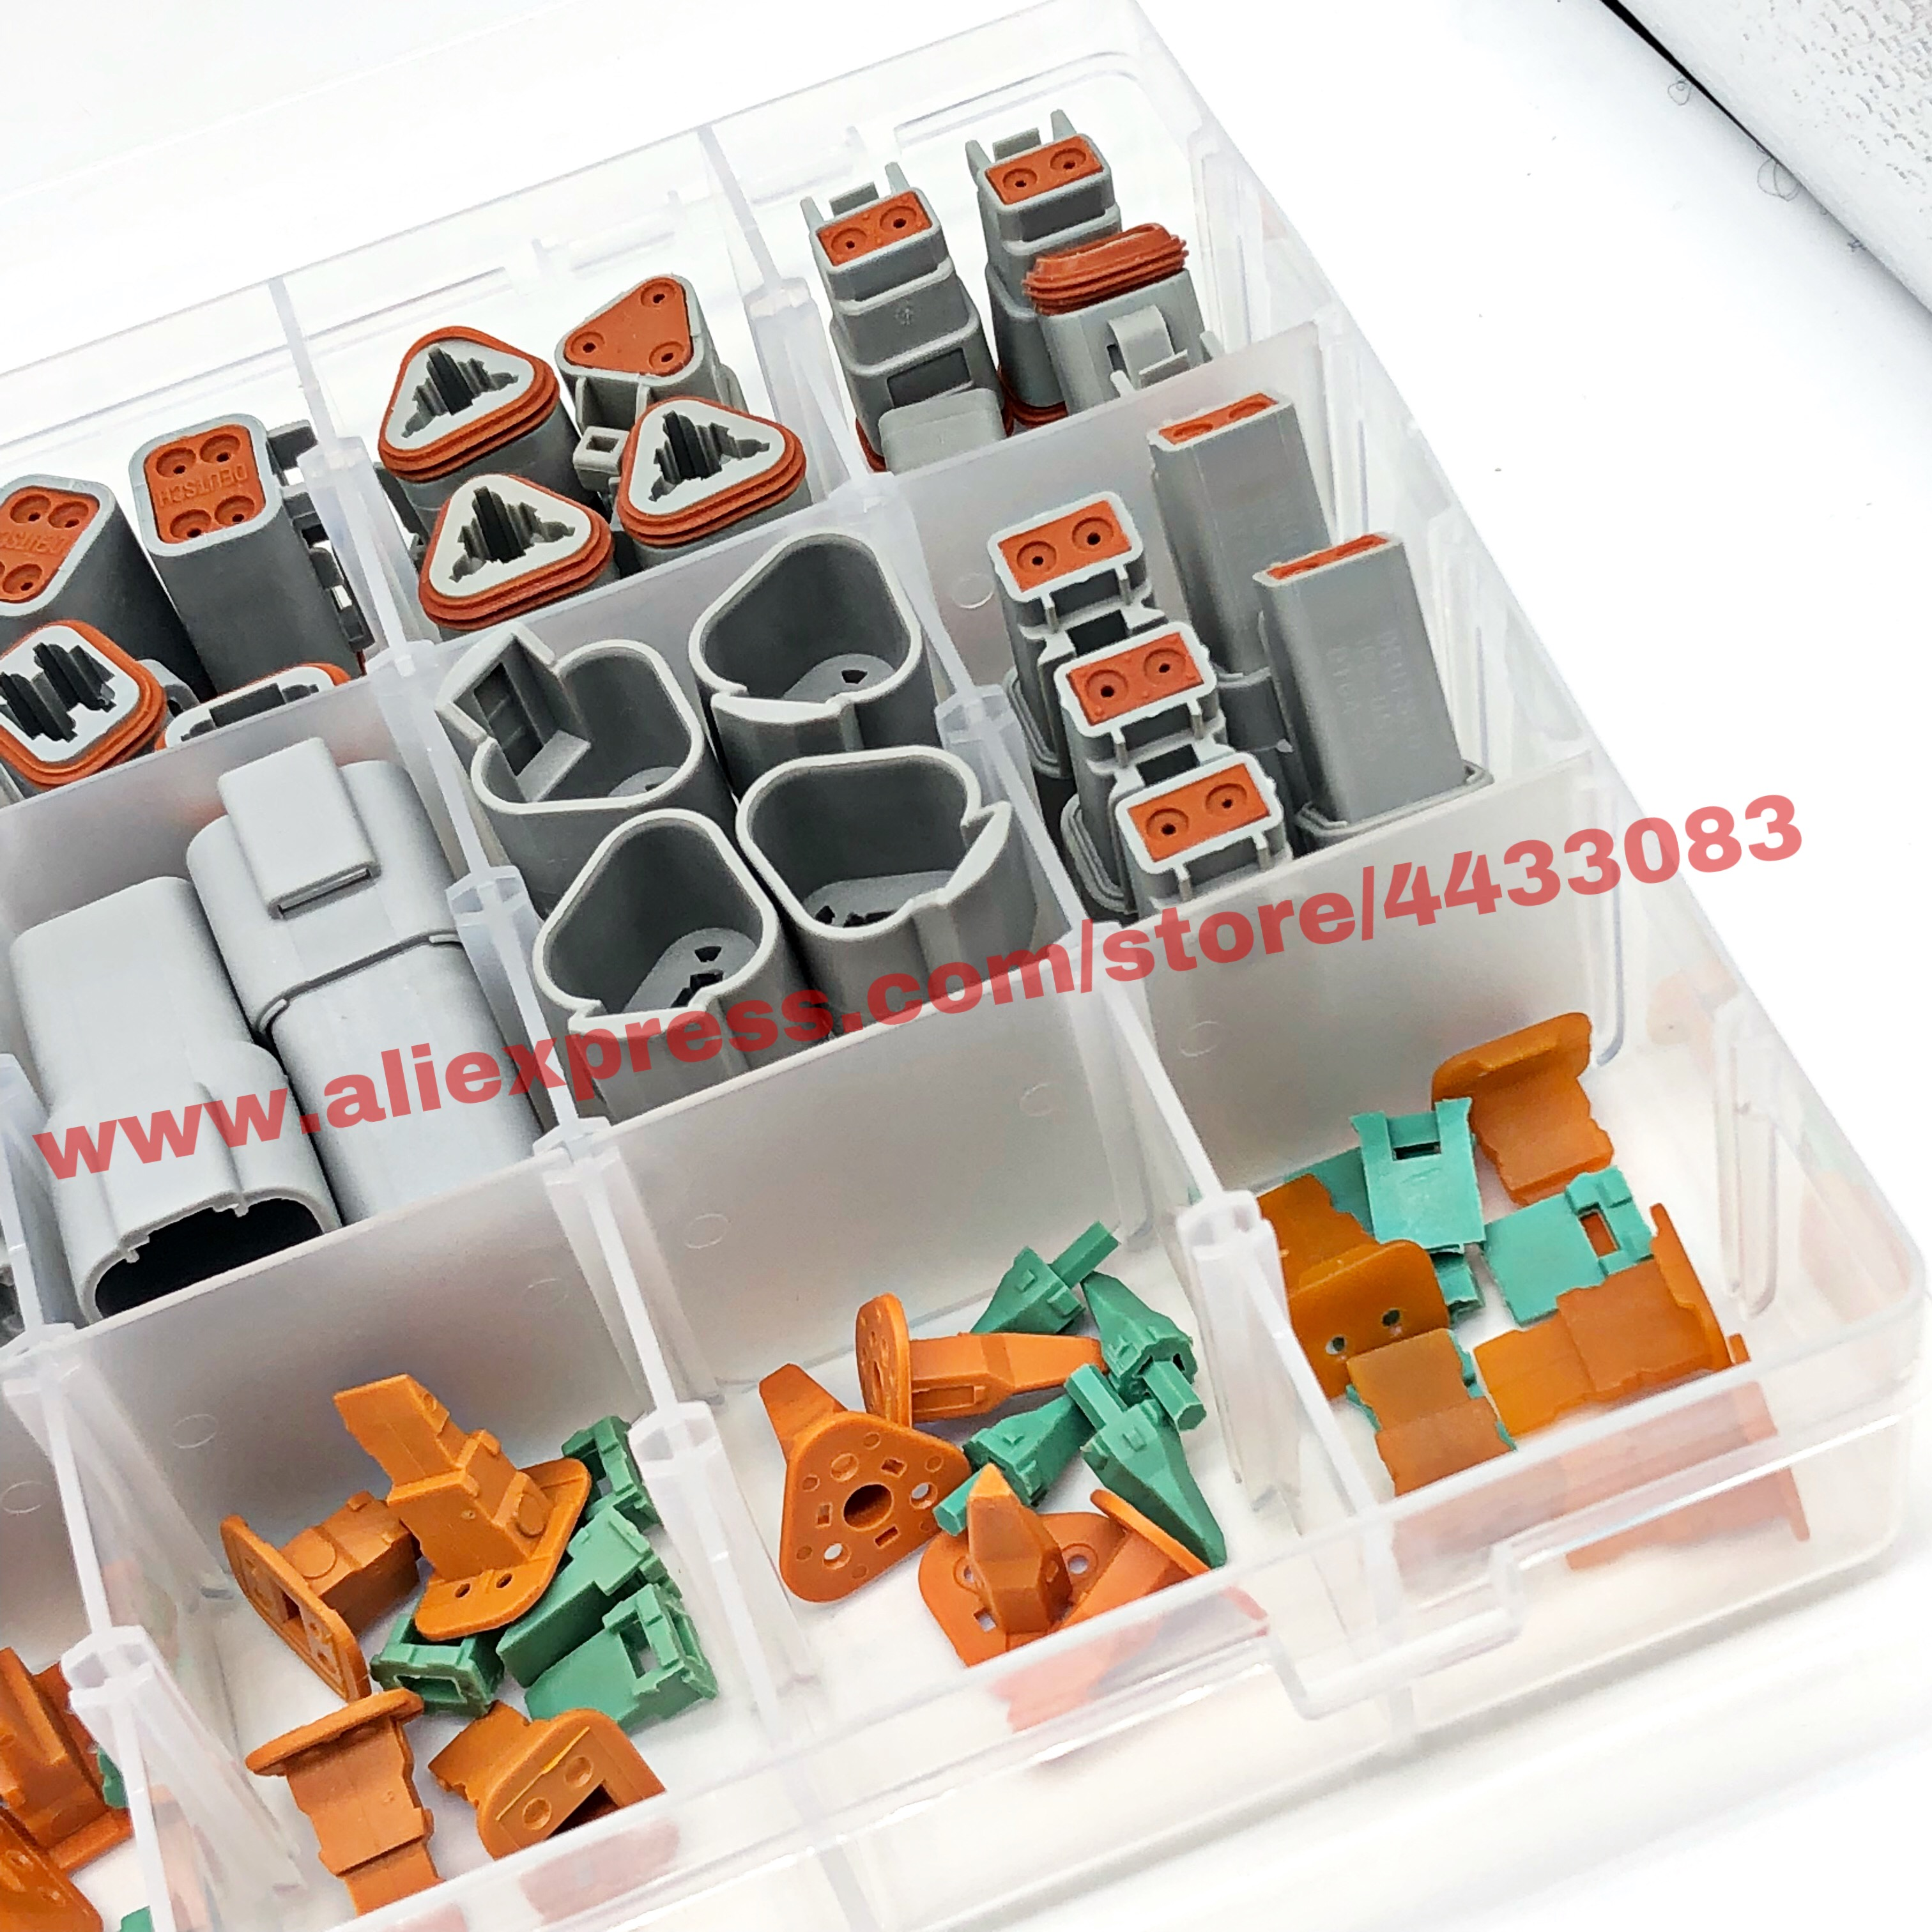 Image 4 - 225pcs Deutsch DT automotive connectors kit + 16 18AWG Crimp Terminals + removal tool 0411 336 1605-in Connectors from Lights & Lighting